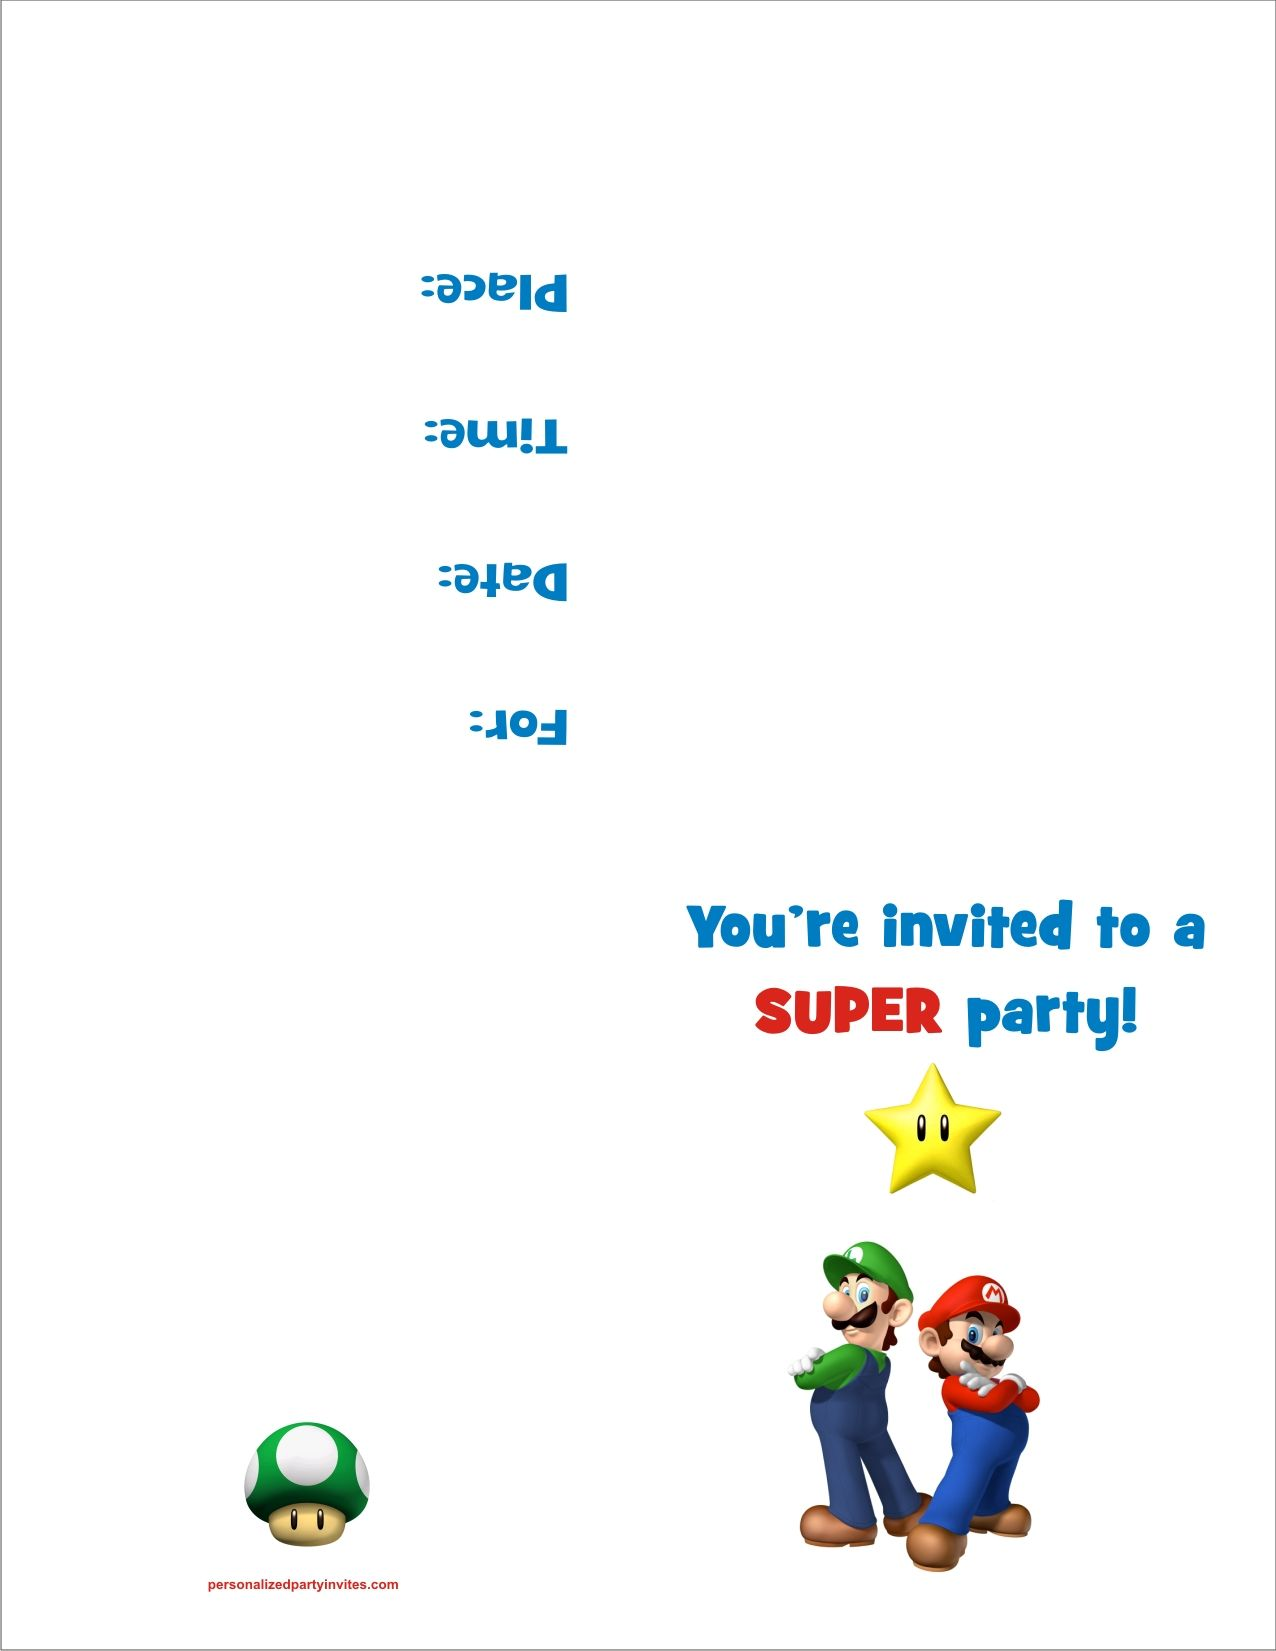 super mario bros printable birthday party invitation we have personalized invitations for kids and adults super mario bros printable birthday